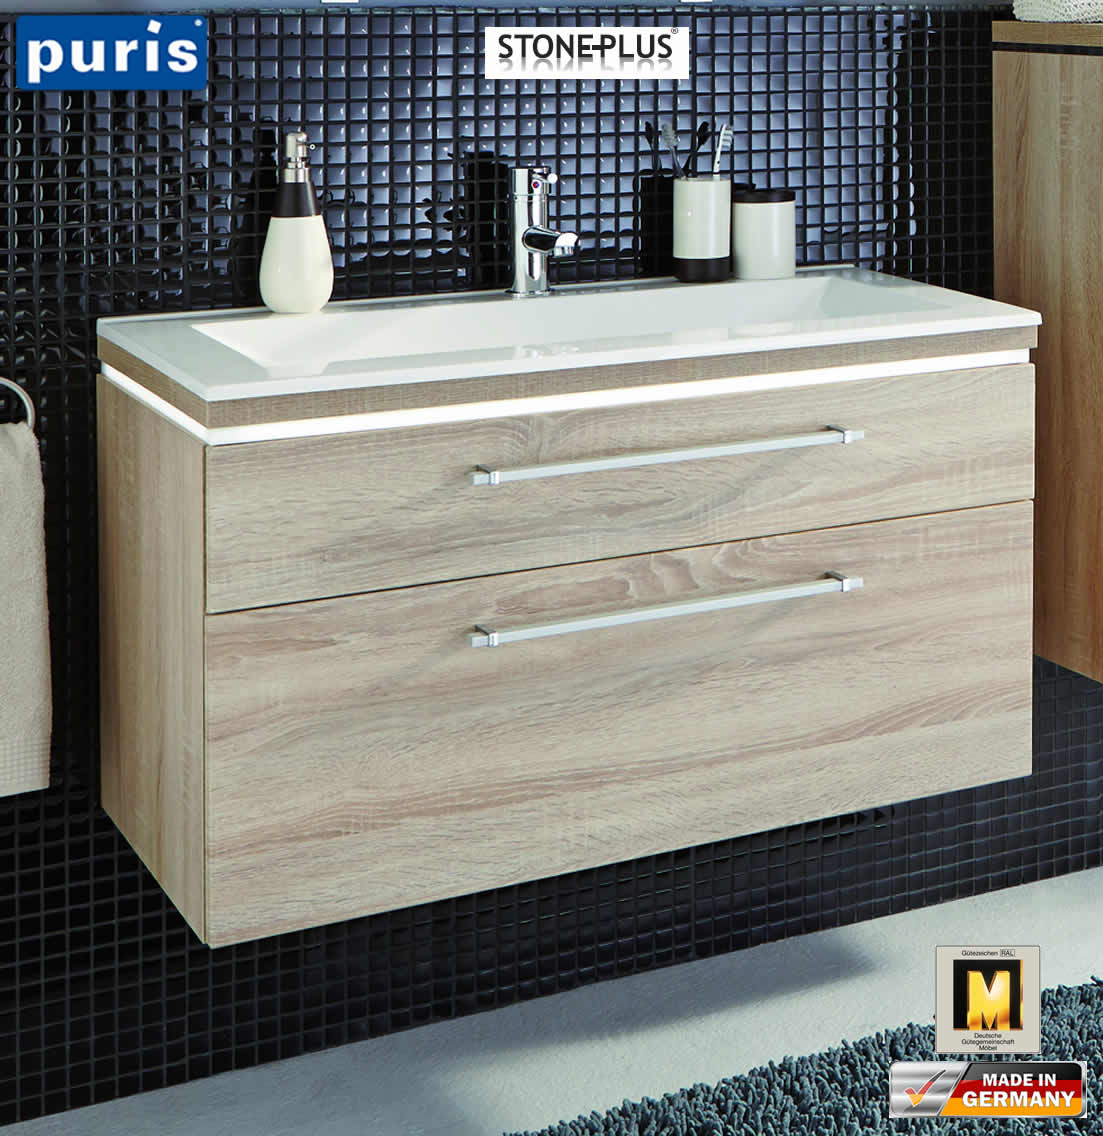 puris cool line waschtisch set 90 cm stoneplus led optional impuls home. Black Bedroom Furniture Sets. Home Design Ideas